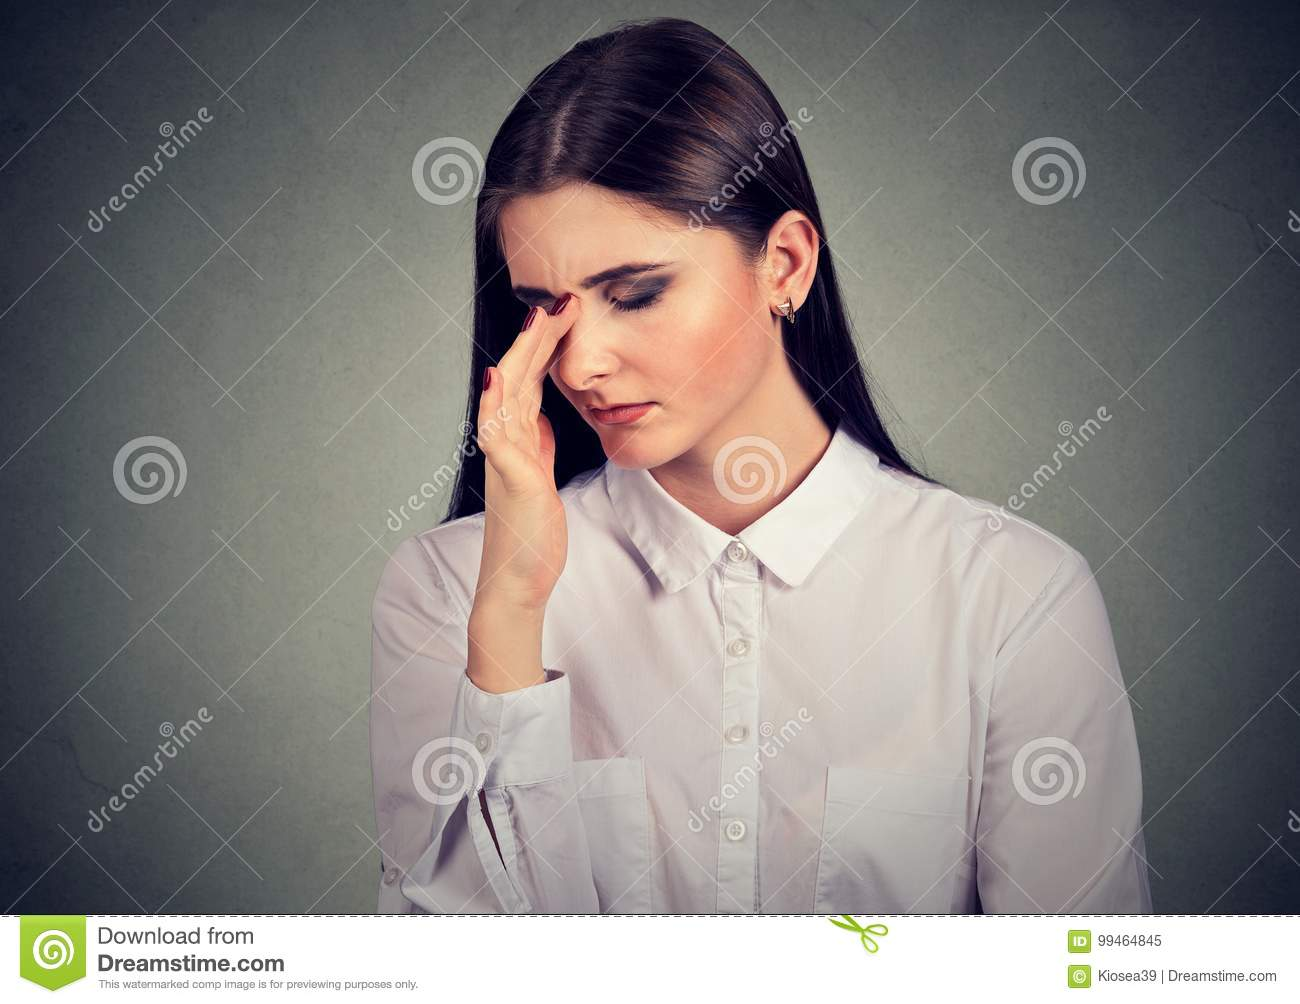 Stressed Sad Young Woman In A Desperate Situation Looking Down Stock Image Image Of Business Frustrated 99464845 Another way to say desperate situation? dreamstime com